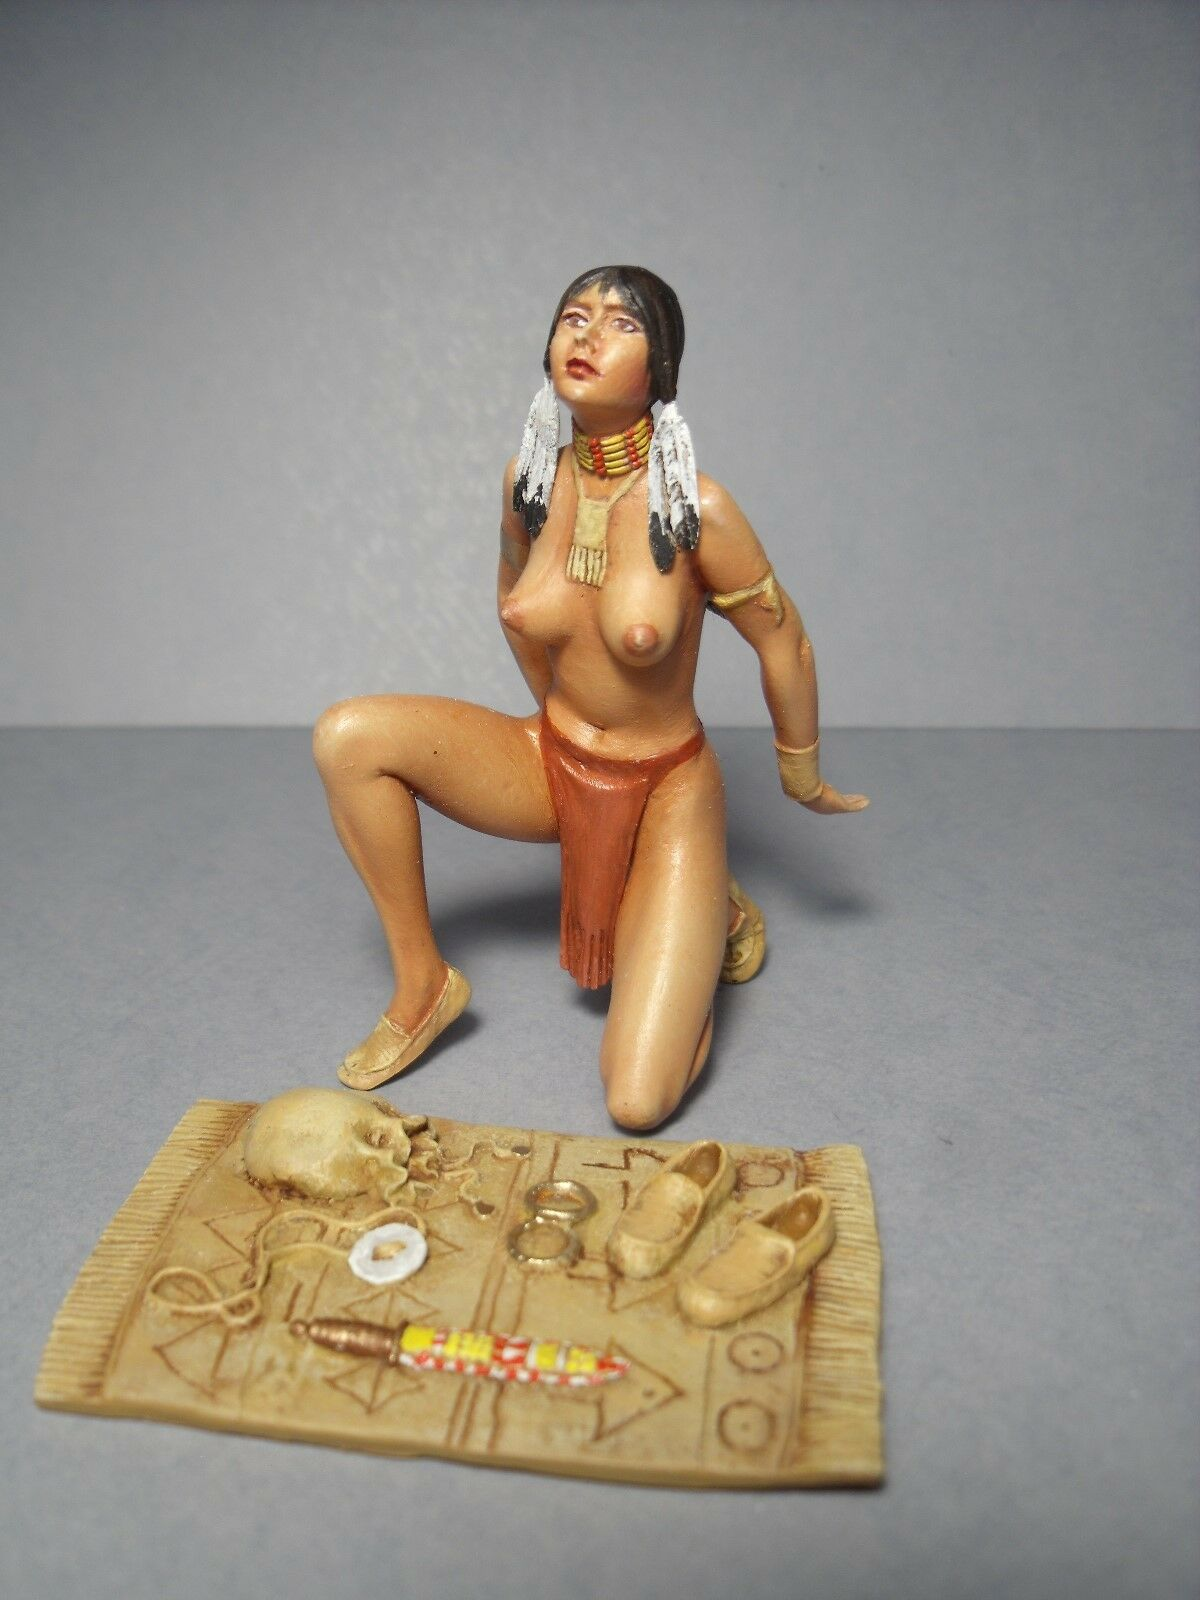 Akuti 1 18 Painted Girl  Figure par Vroum Phoenix mascote  économiser jusqu'à 70% de réduction